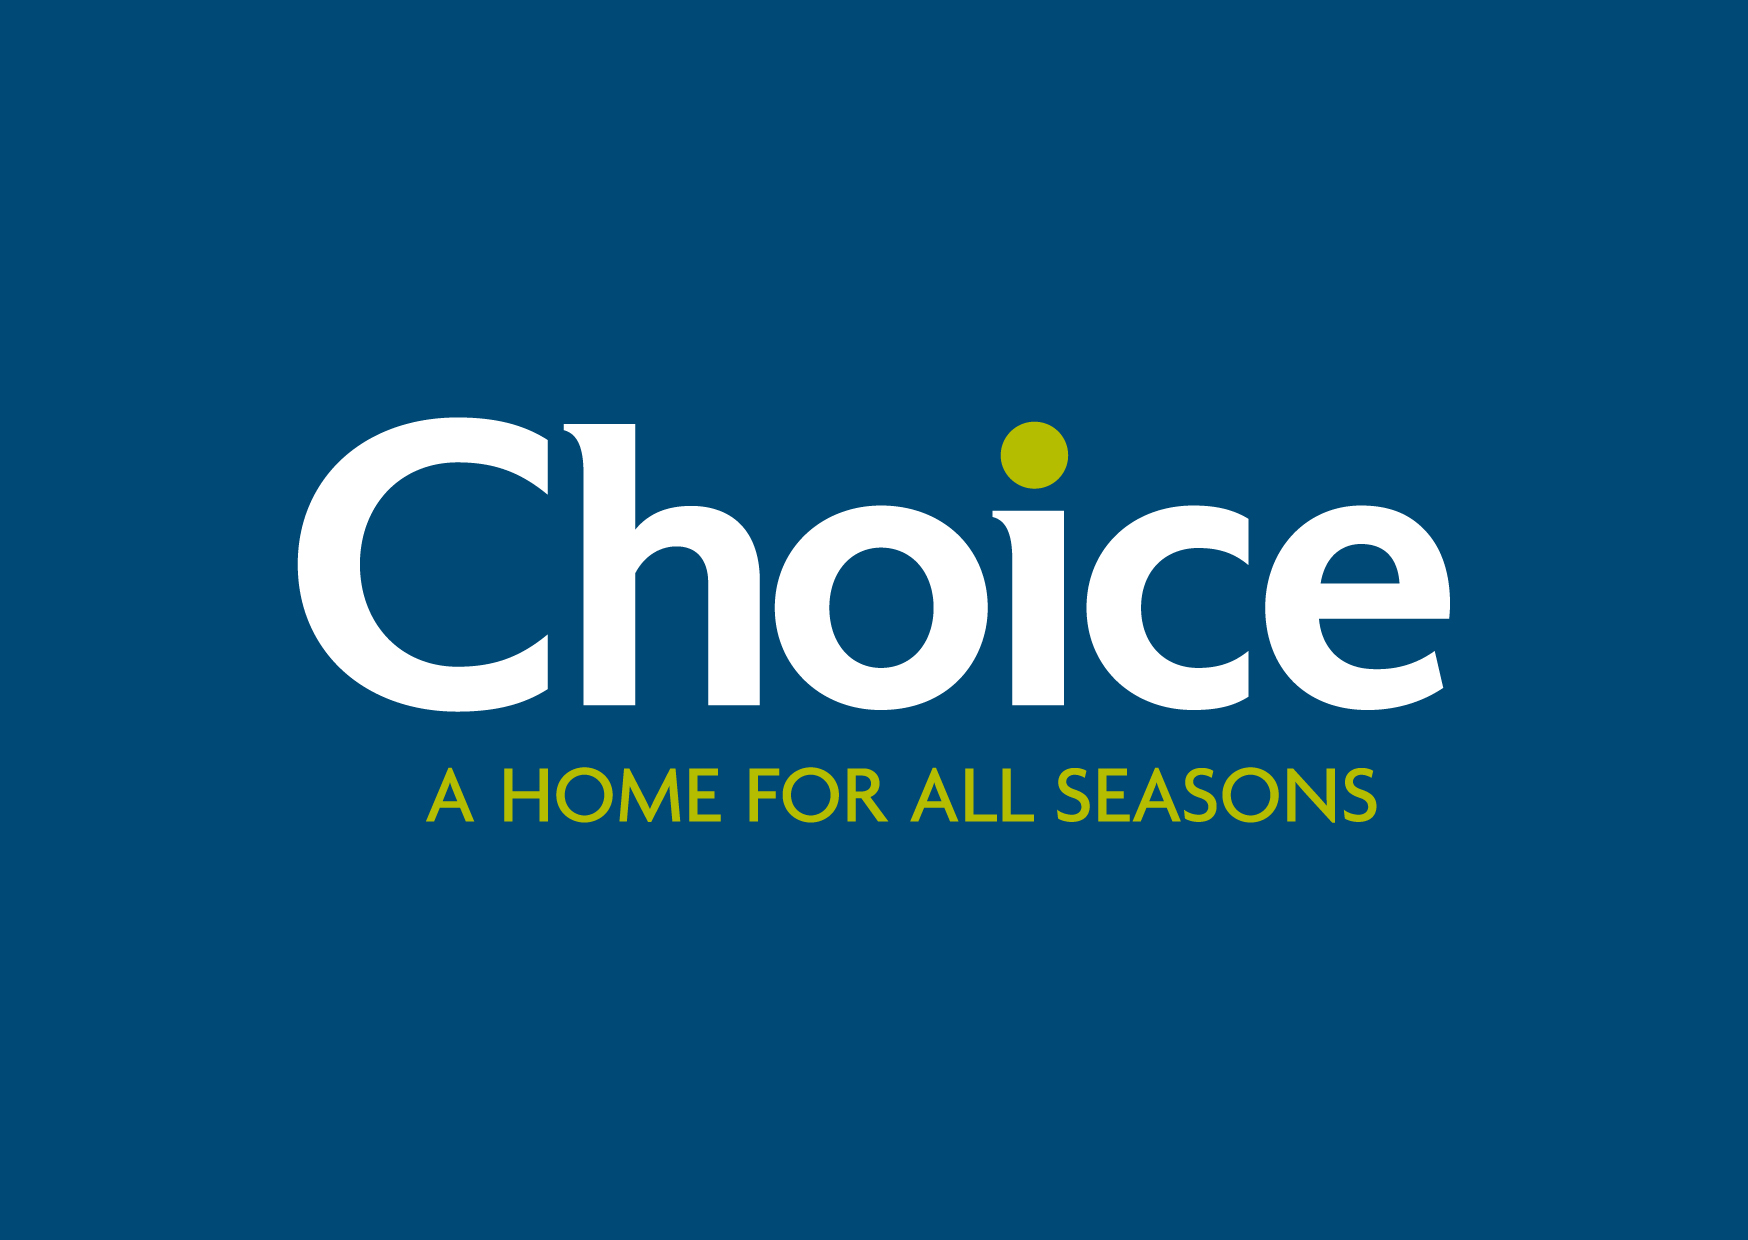 Choice Stores A Home For All Seasons